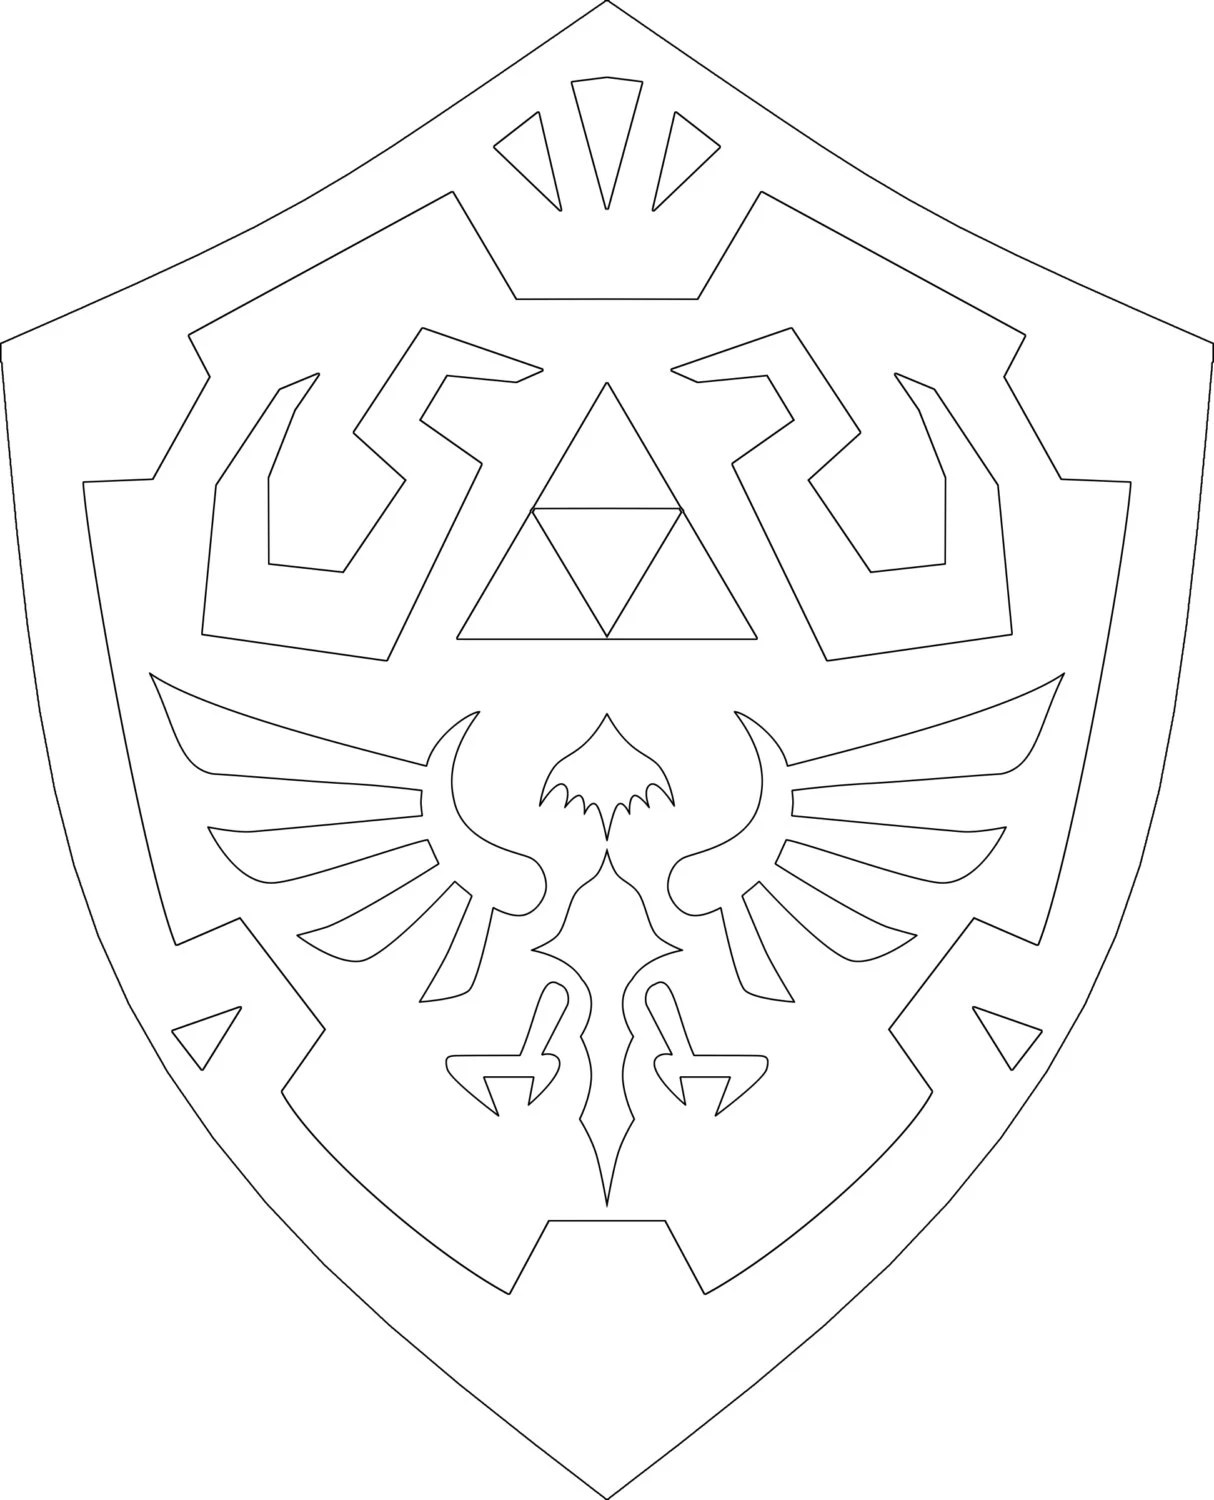 Hand Embroidery Hyrule Crest Shield Pattern PDF Download